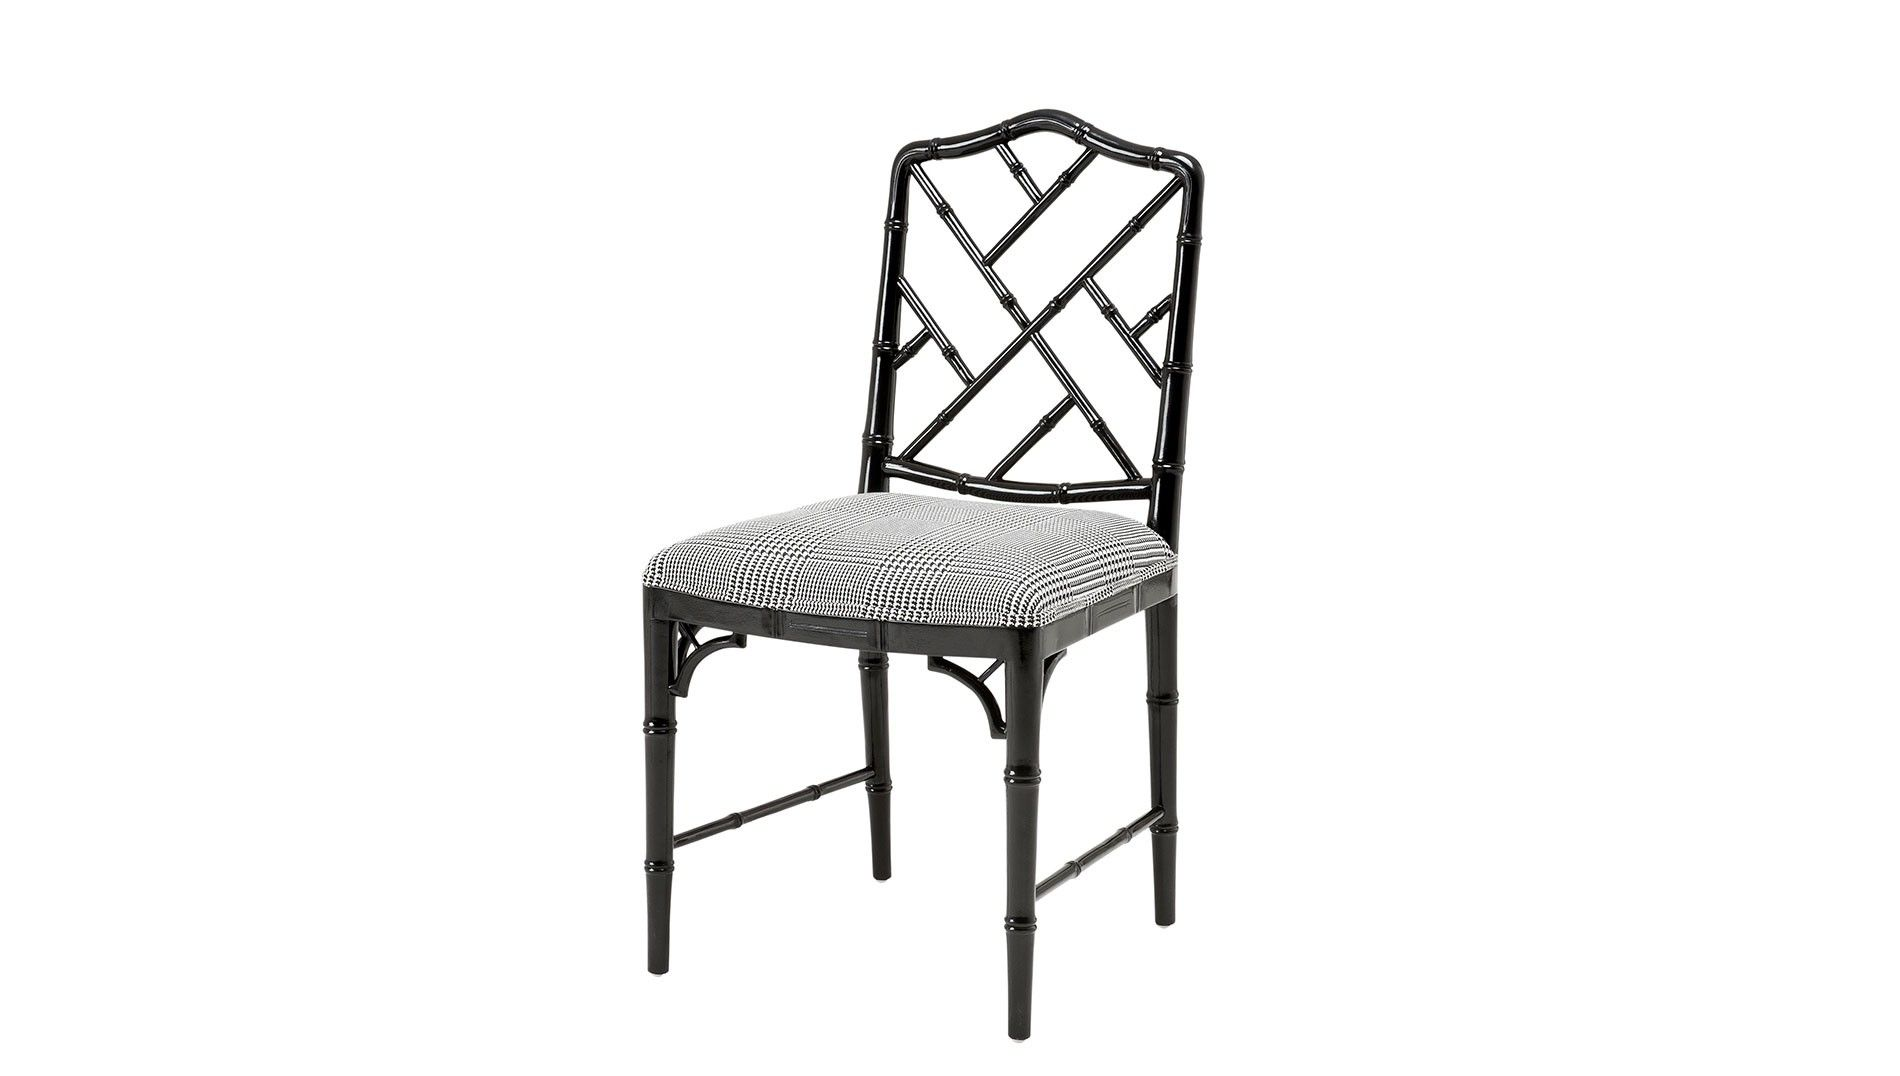 Chinese Chippendale Chairs Uk Hammock Chair Stand Plans Trellis Back And Bamboo Style Framework Eichholtz Infinity Dining Luxdeco Com